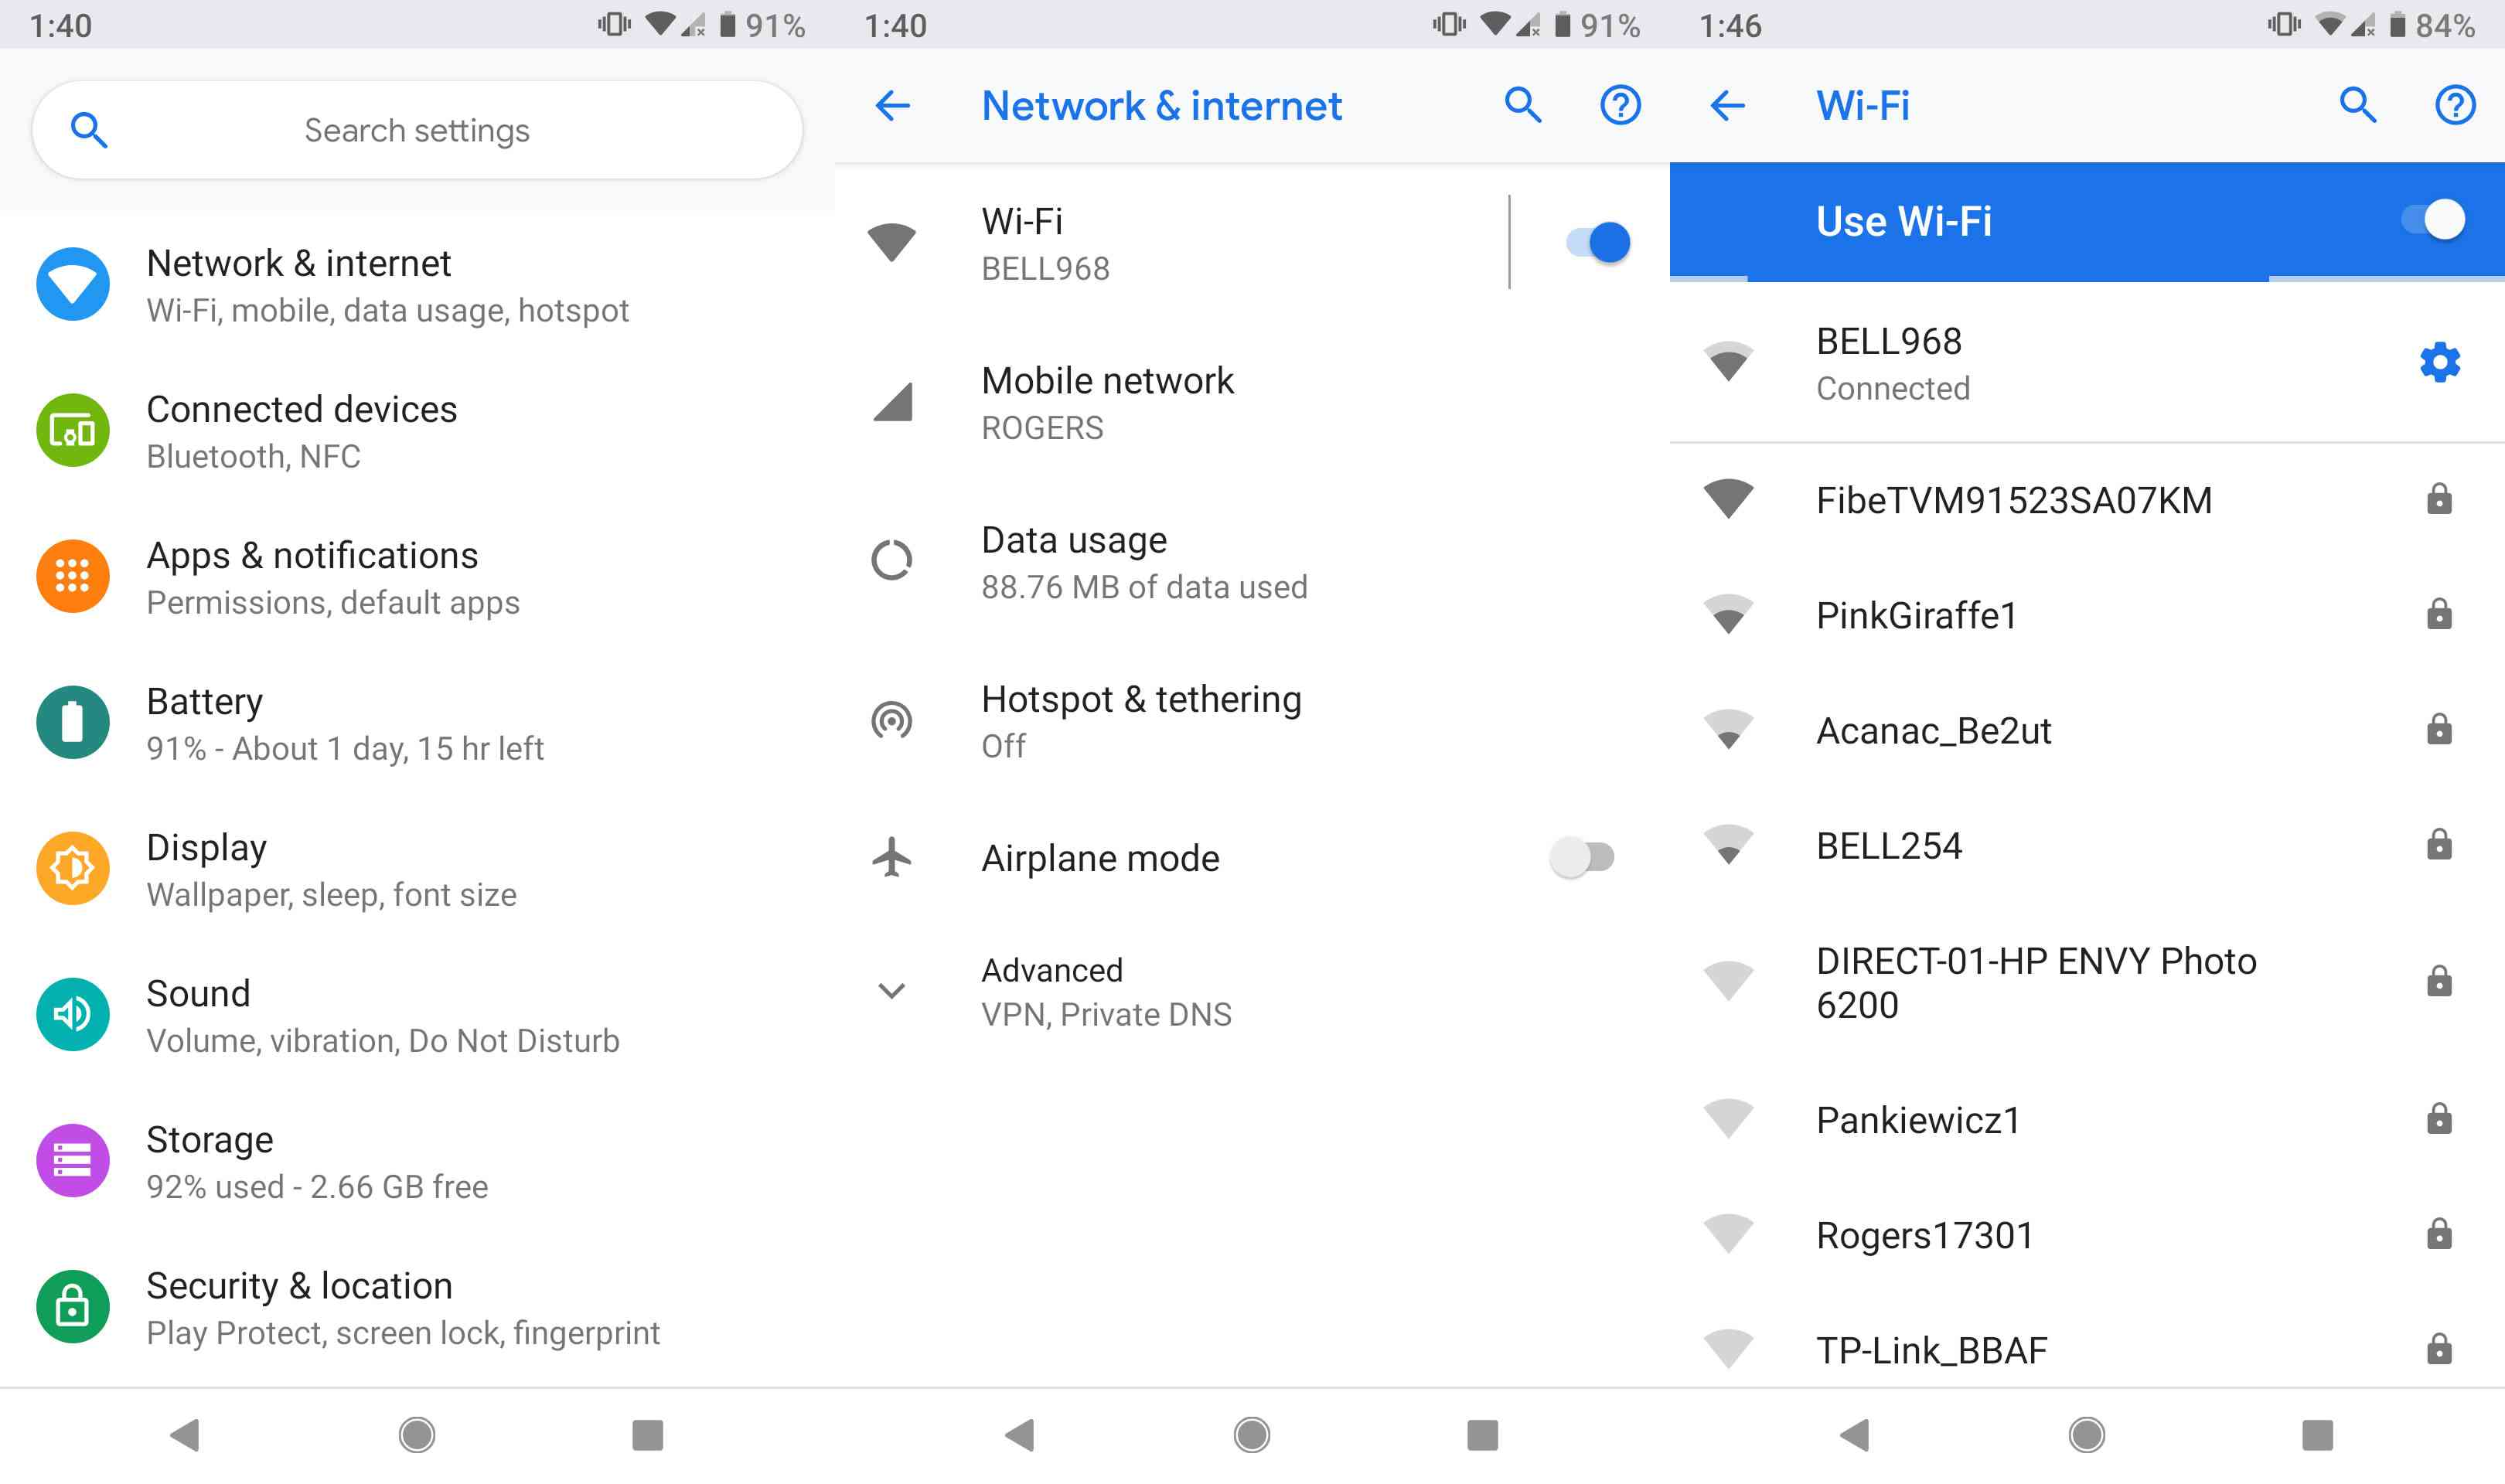 A screenshot showing a list of available Wi-Fi networks.